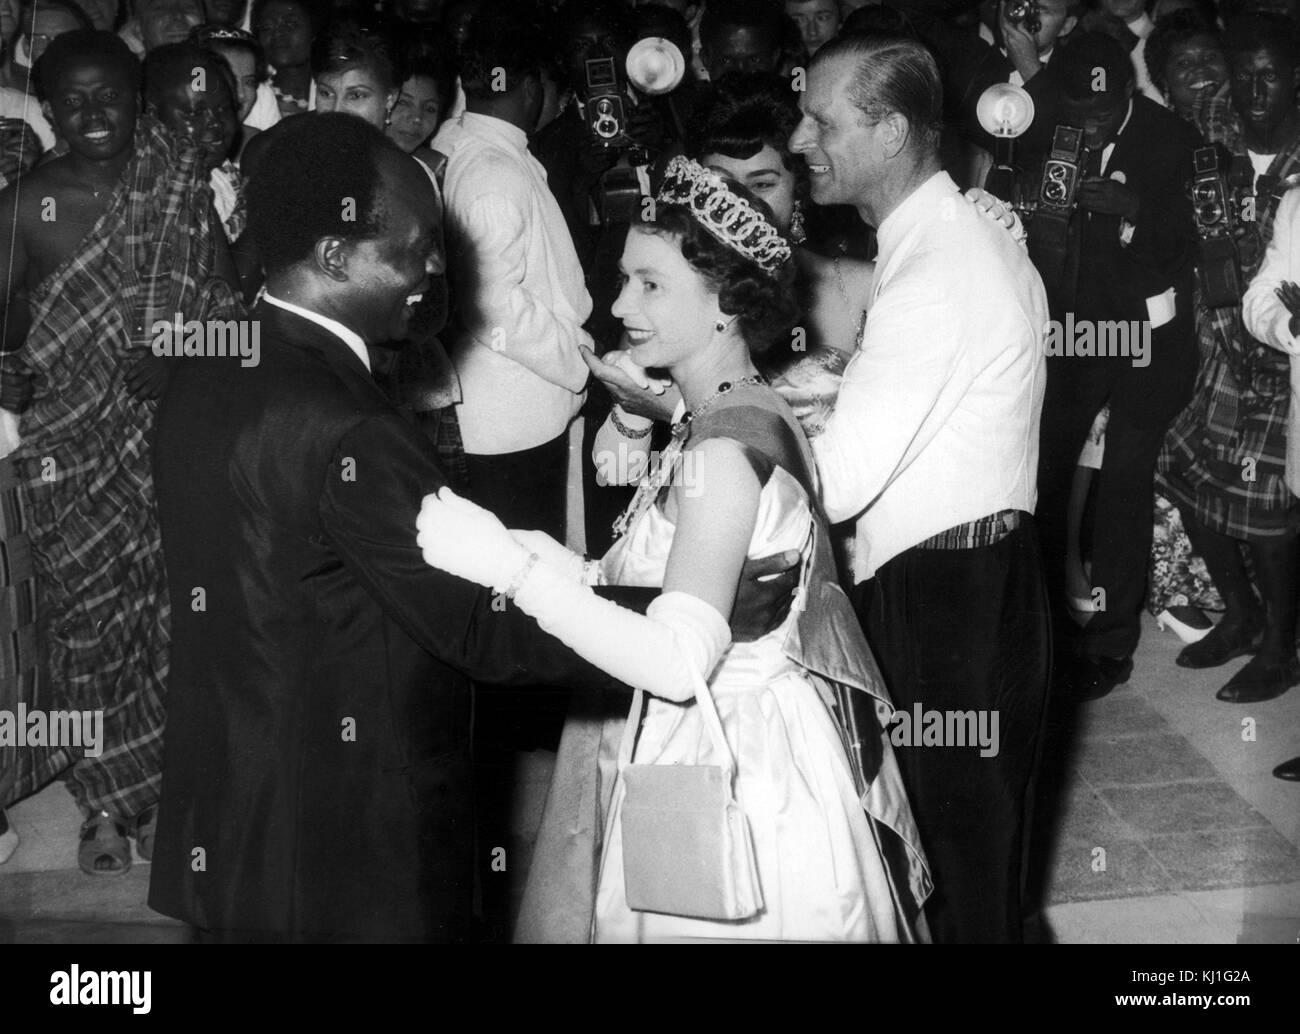 Queen Elizabeth II of Great Britain dances with President Kwame Nkrumah of Ghana, during her visit to Accra, Ghana, - Stock Image